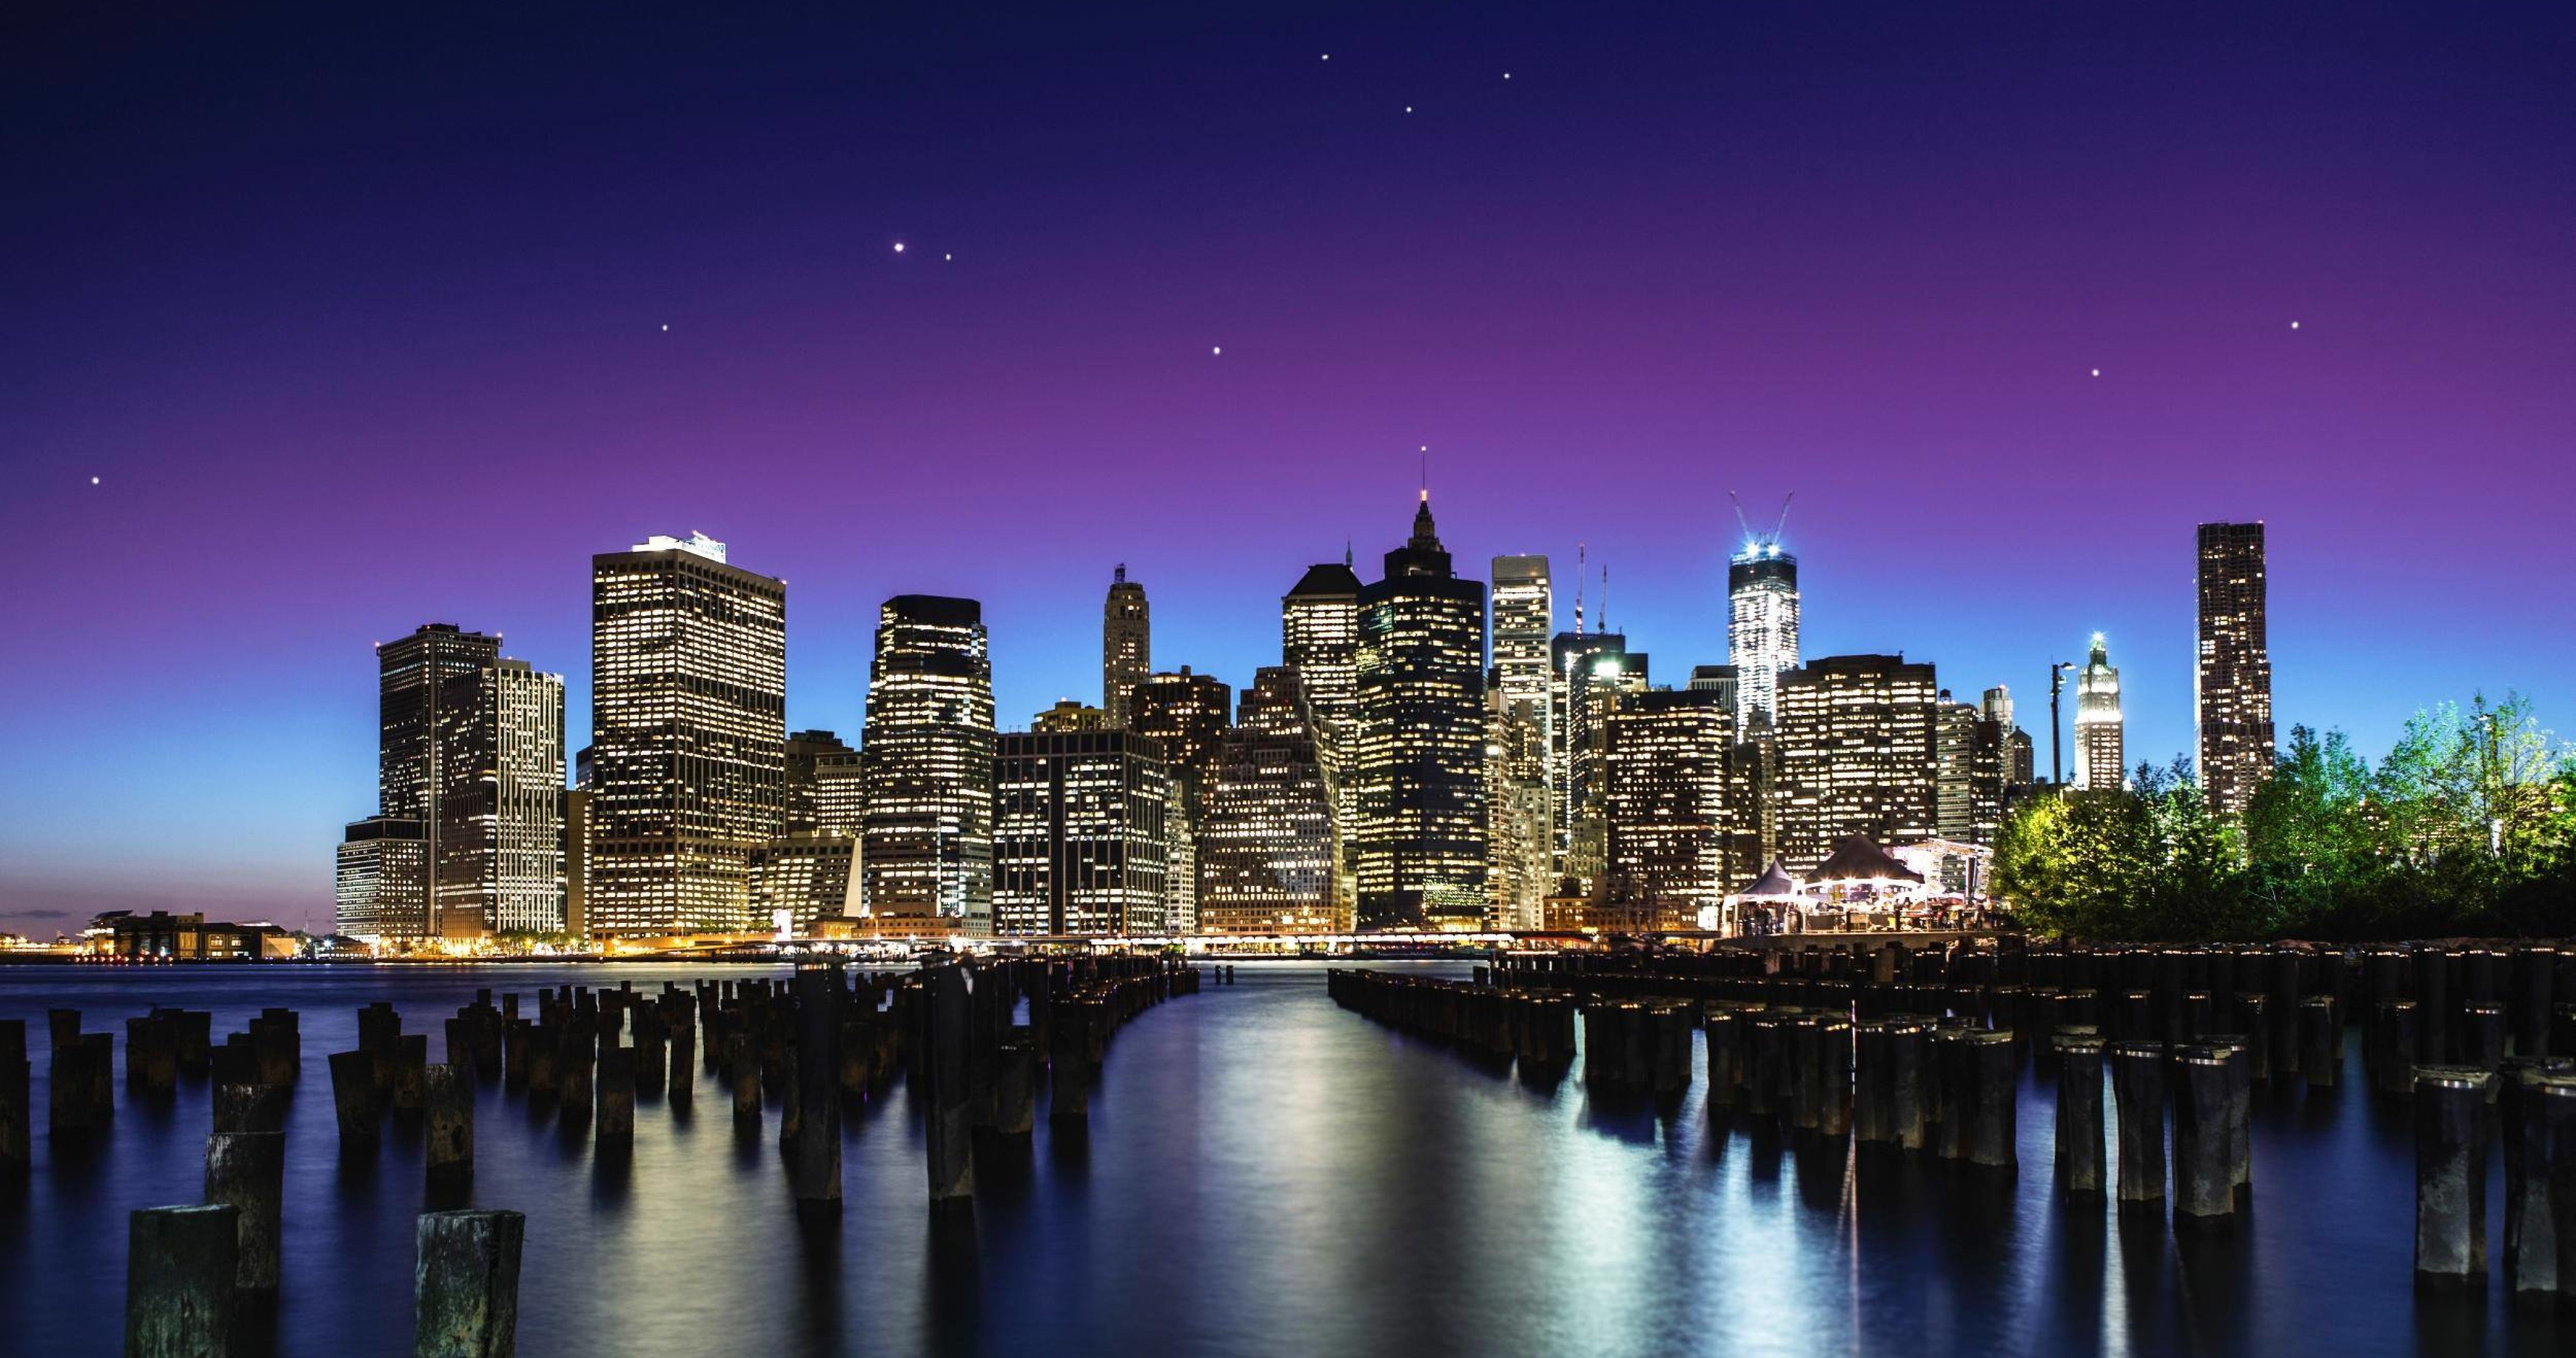 Good Wallpaper High Quality City - 75197-city-new-york-4k-ultra-hd-wallpaper__cityscapes  Picture_207843.jpg